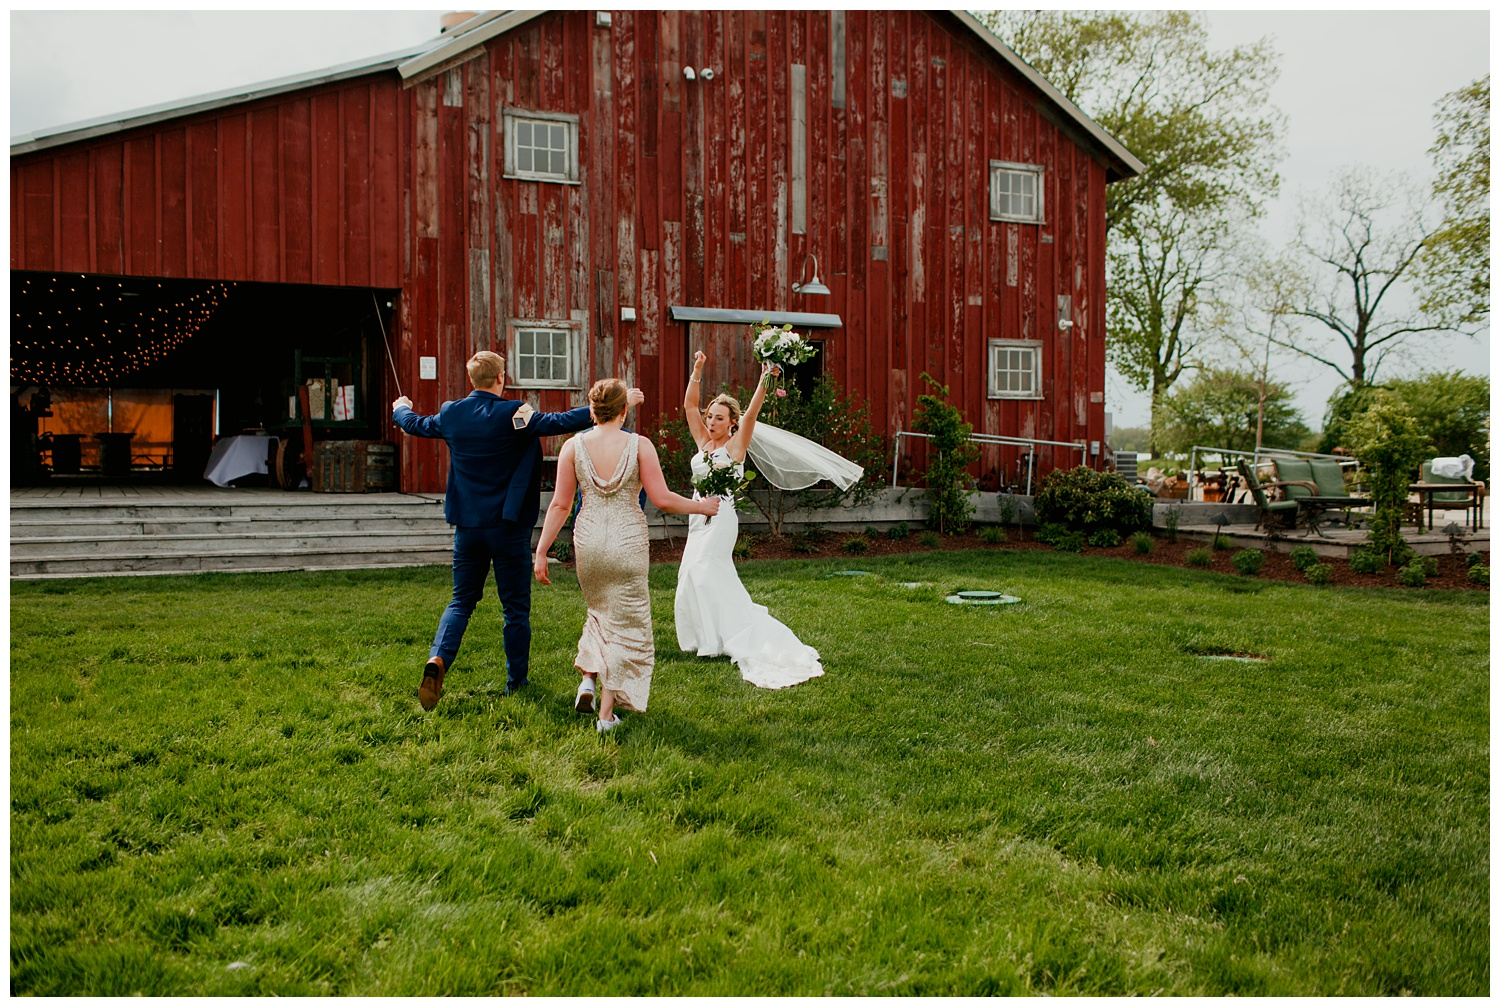 blissfulbarn threeoaks michigan wedding photography journeymandistillery85.jpg